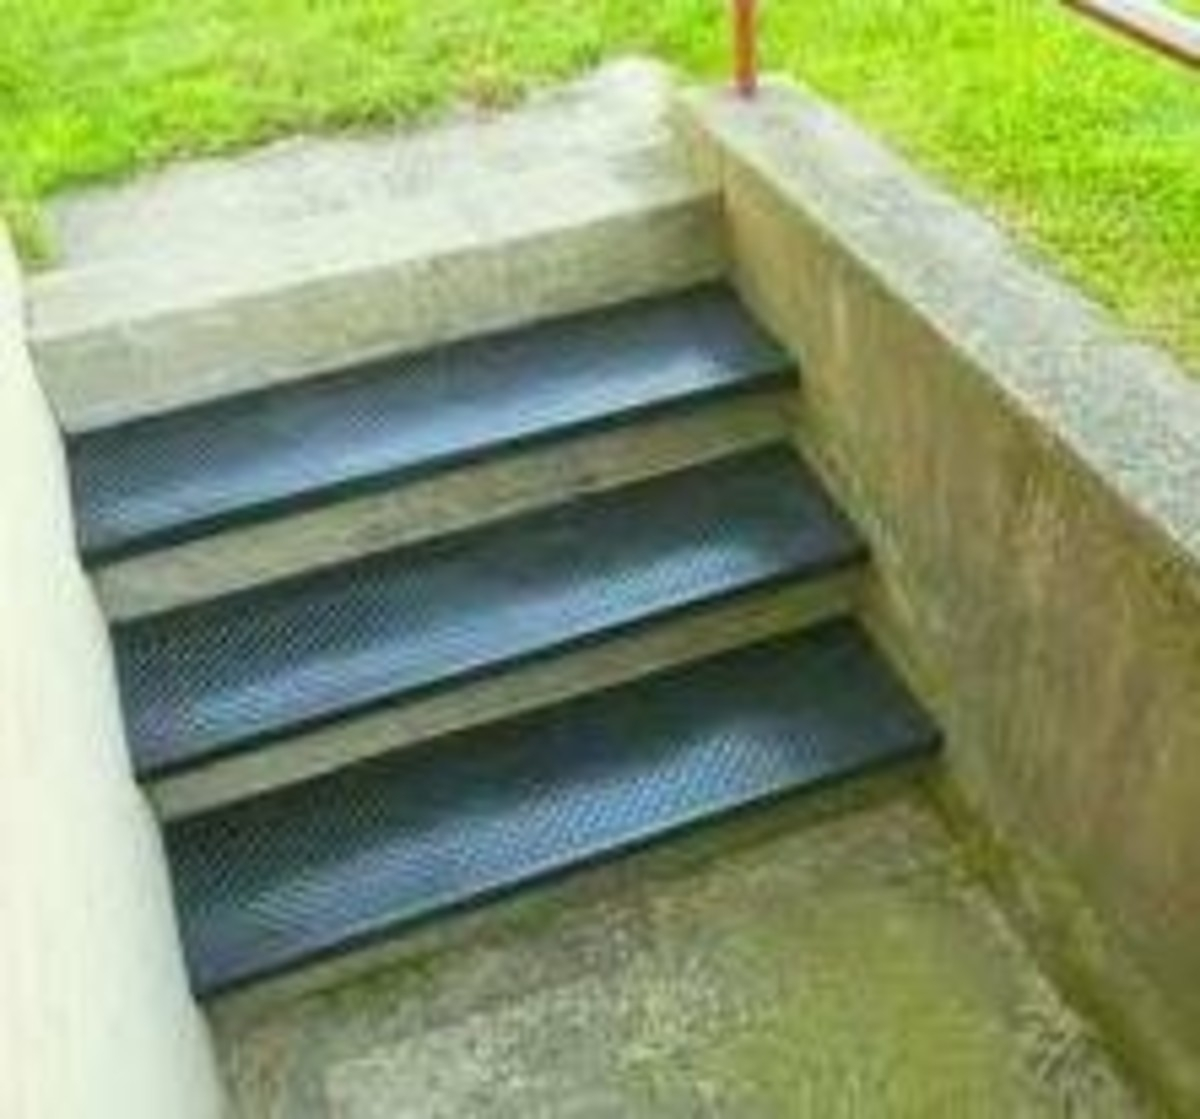 Best Selling Outdoor Stair Treads Hubpages   Best Outdoor Stair Treads   Stair Stringers   Wood   Carpet   Spiral Staircase   Carpet Stair